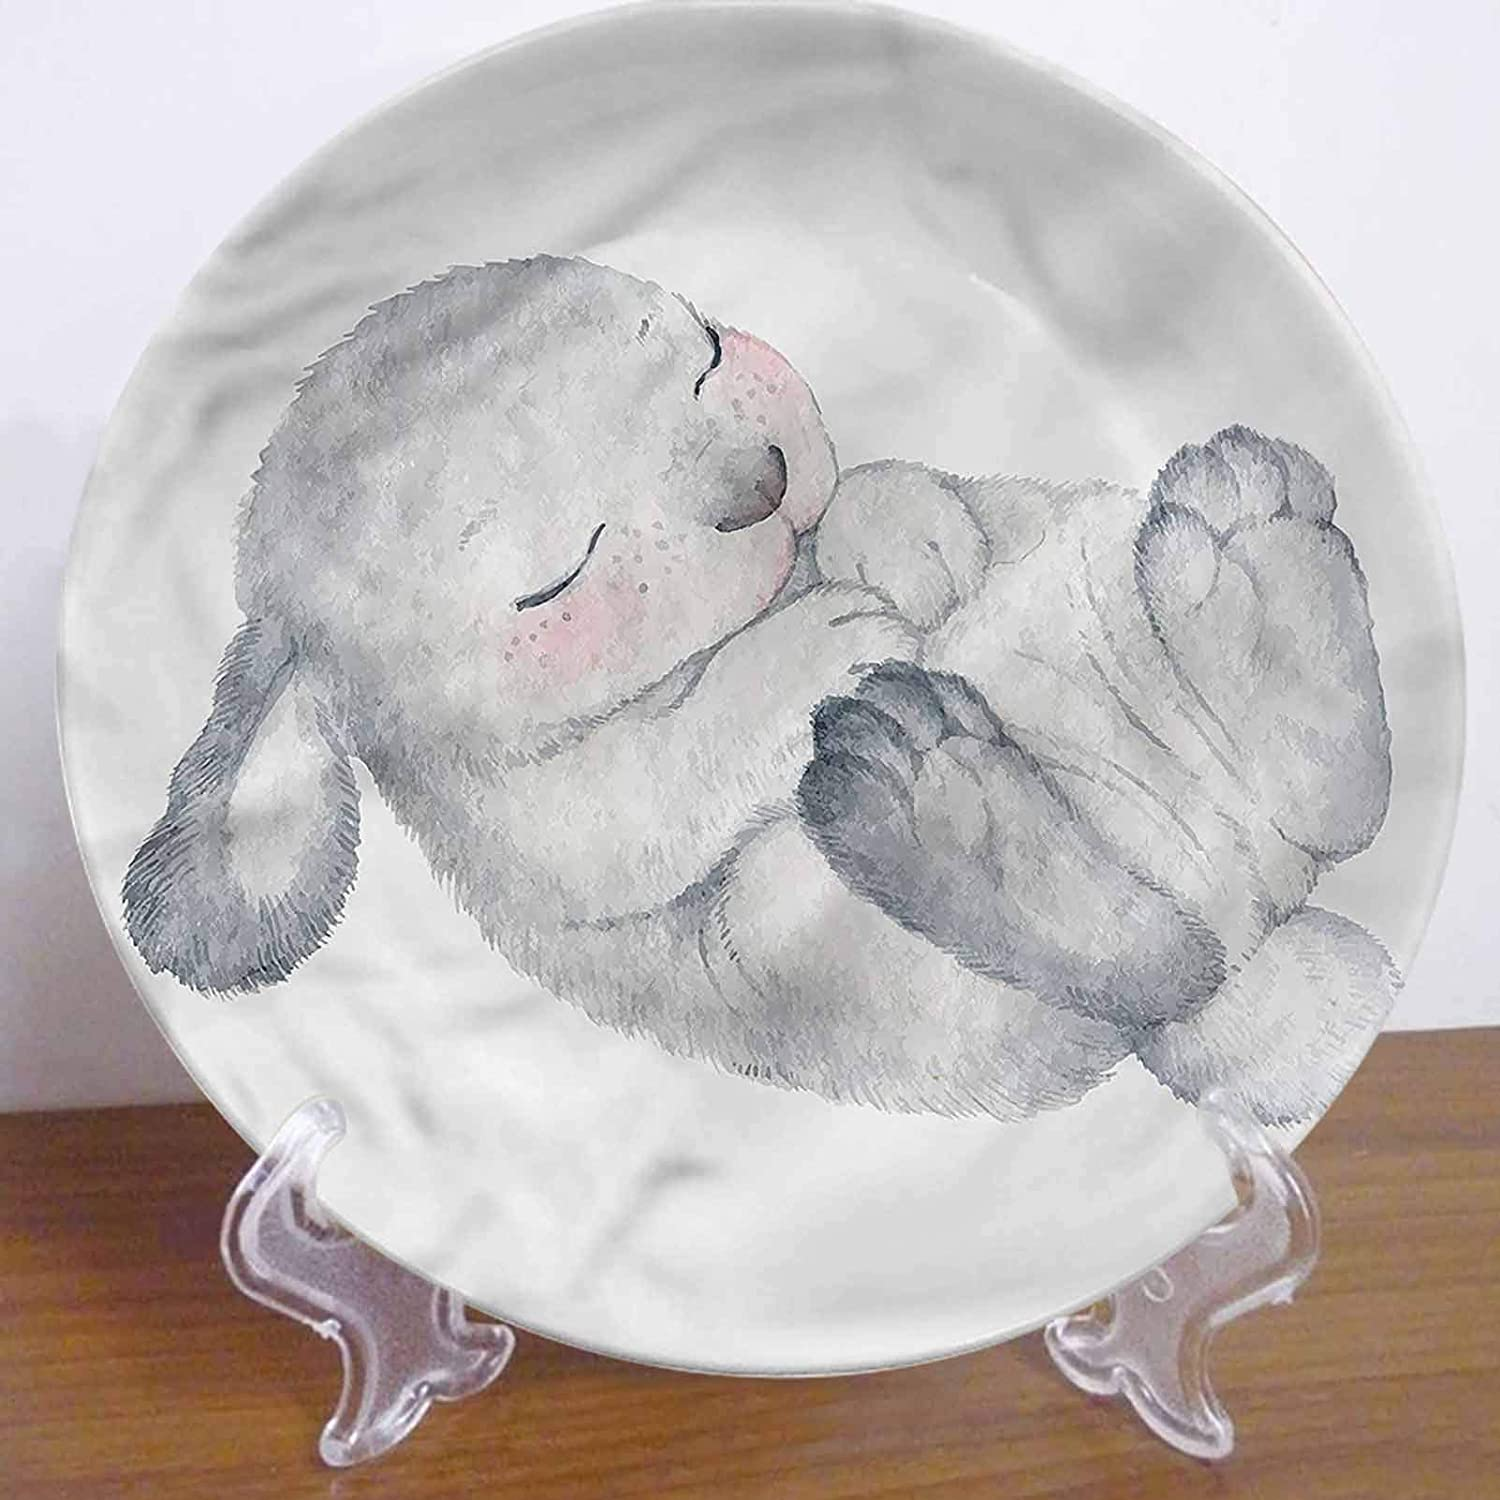 10 Inch Rabbit Pattern Ceramic Hanging Decorative Plate,Cute Little Bunny Sleeping Ceramic Stoneware Decorative Plate Ceramic Ornament for Home&Office Wall Decors Family Sentiment